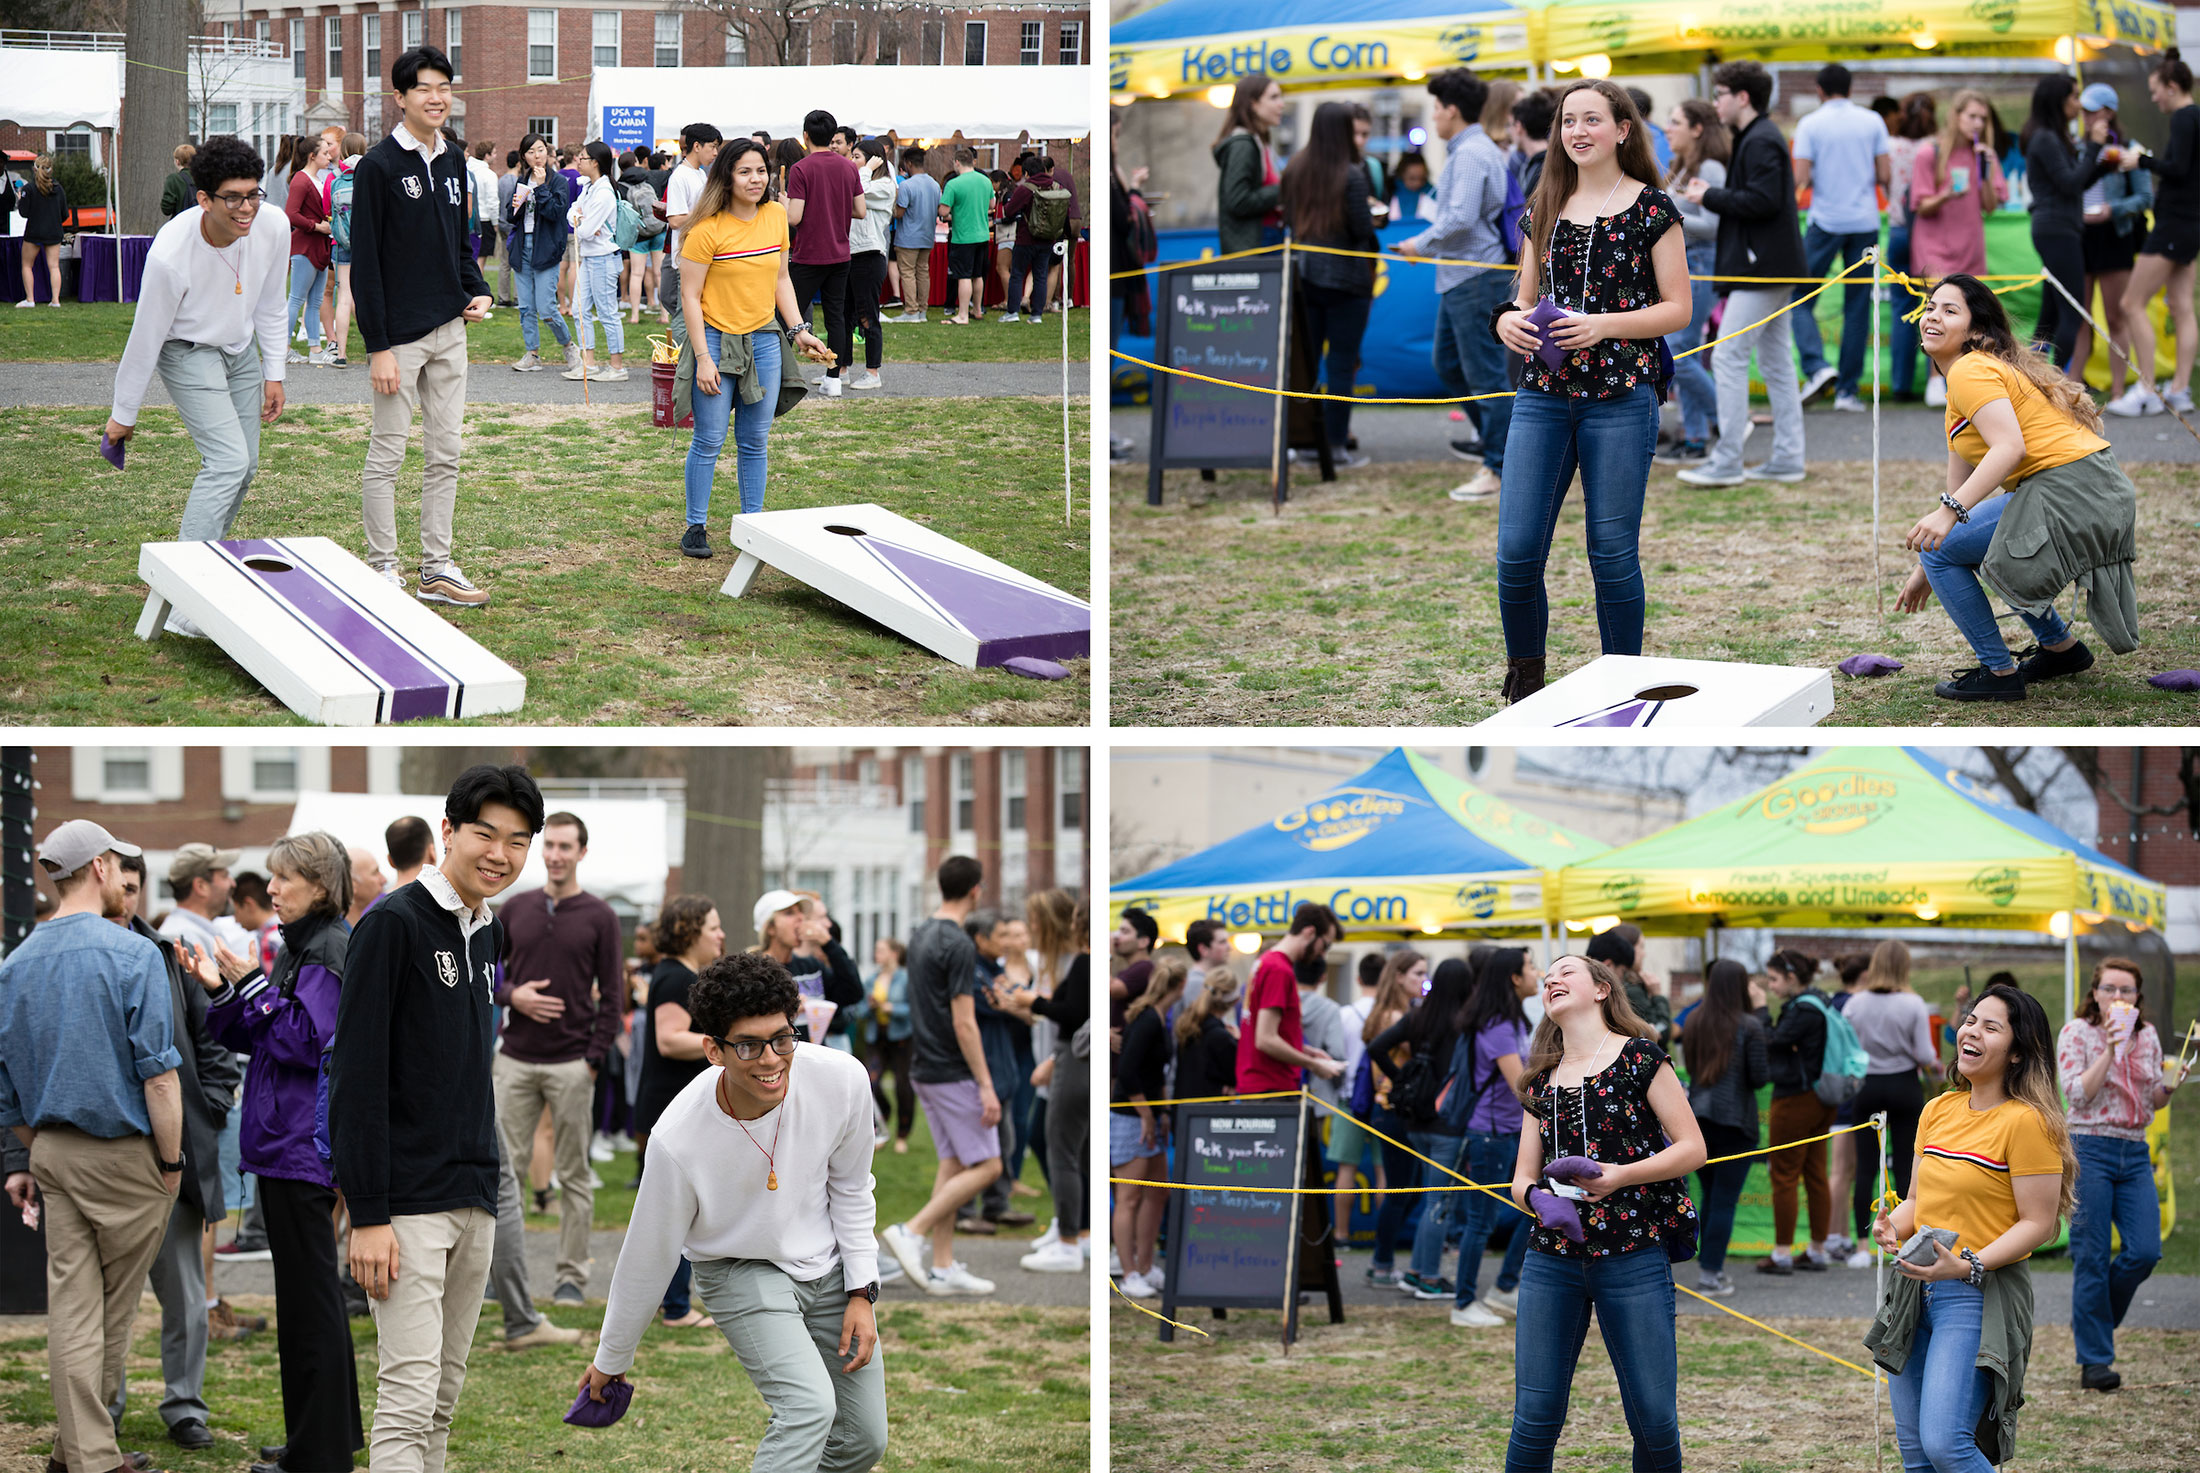 Students at City Streets festival, Amherst College